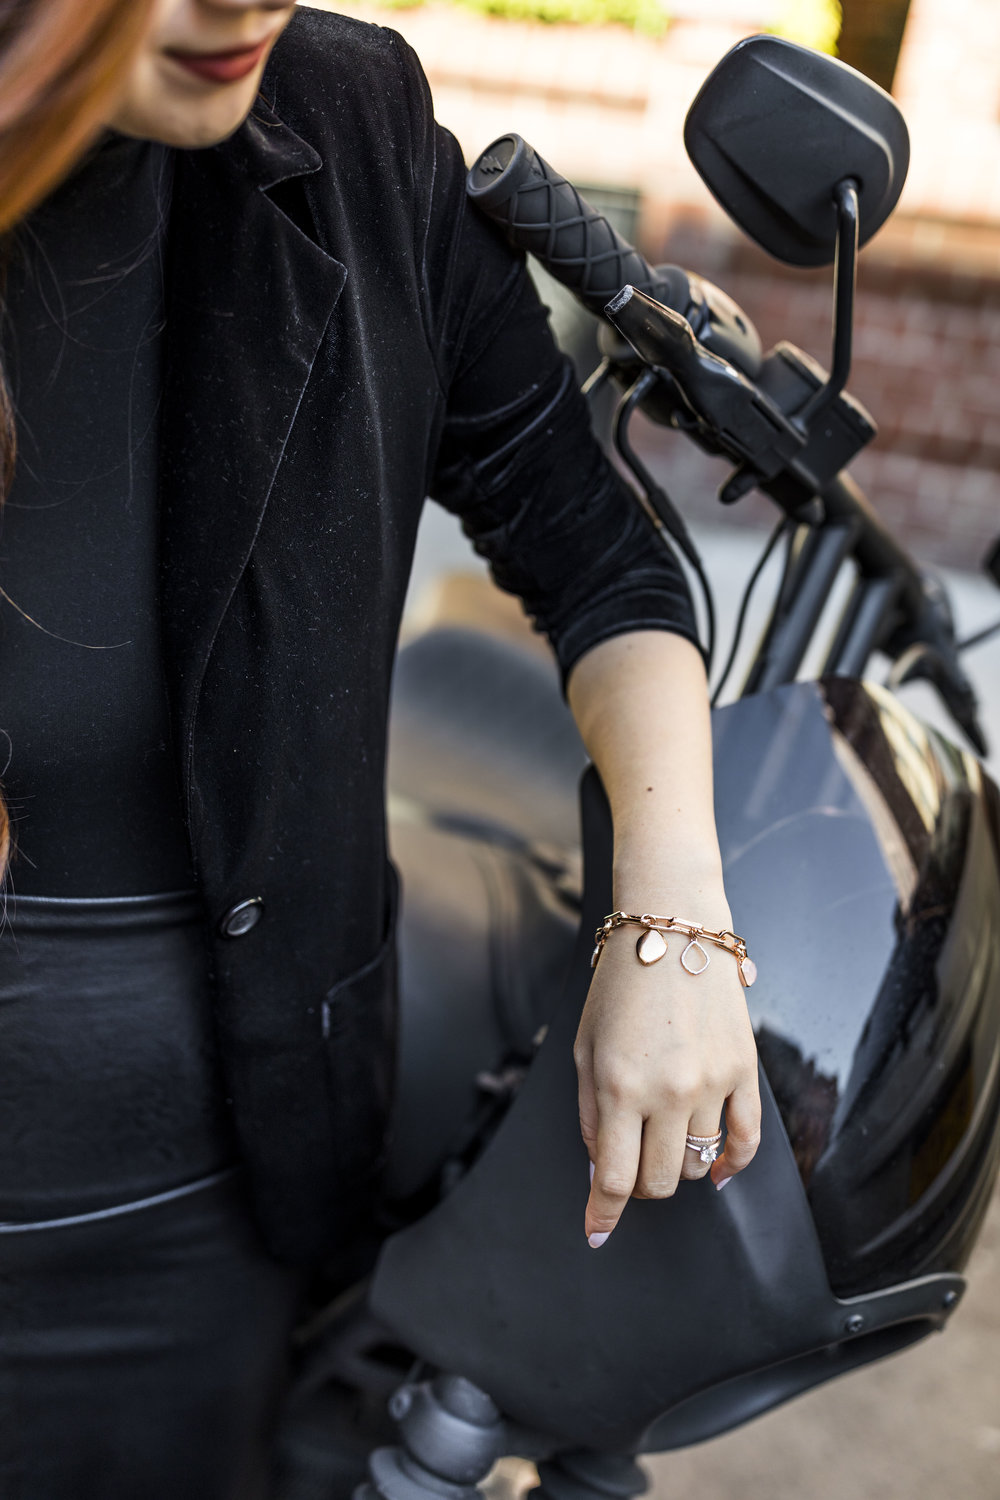 Personalize your bracelet with different pendants; photo by Ashley Gallerani.